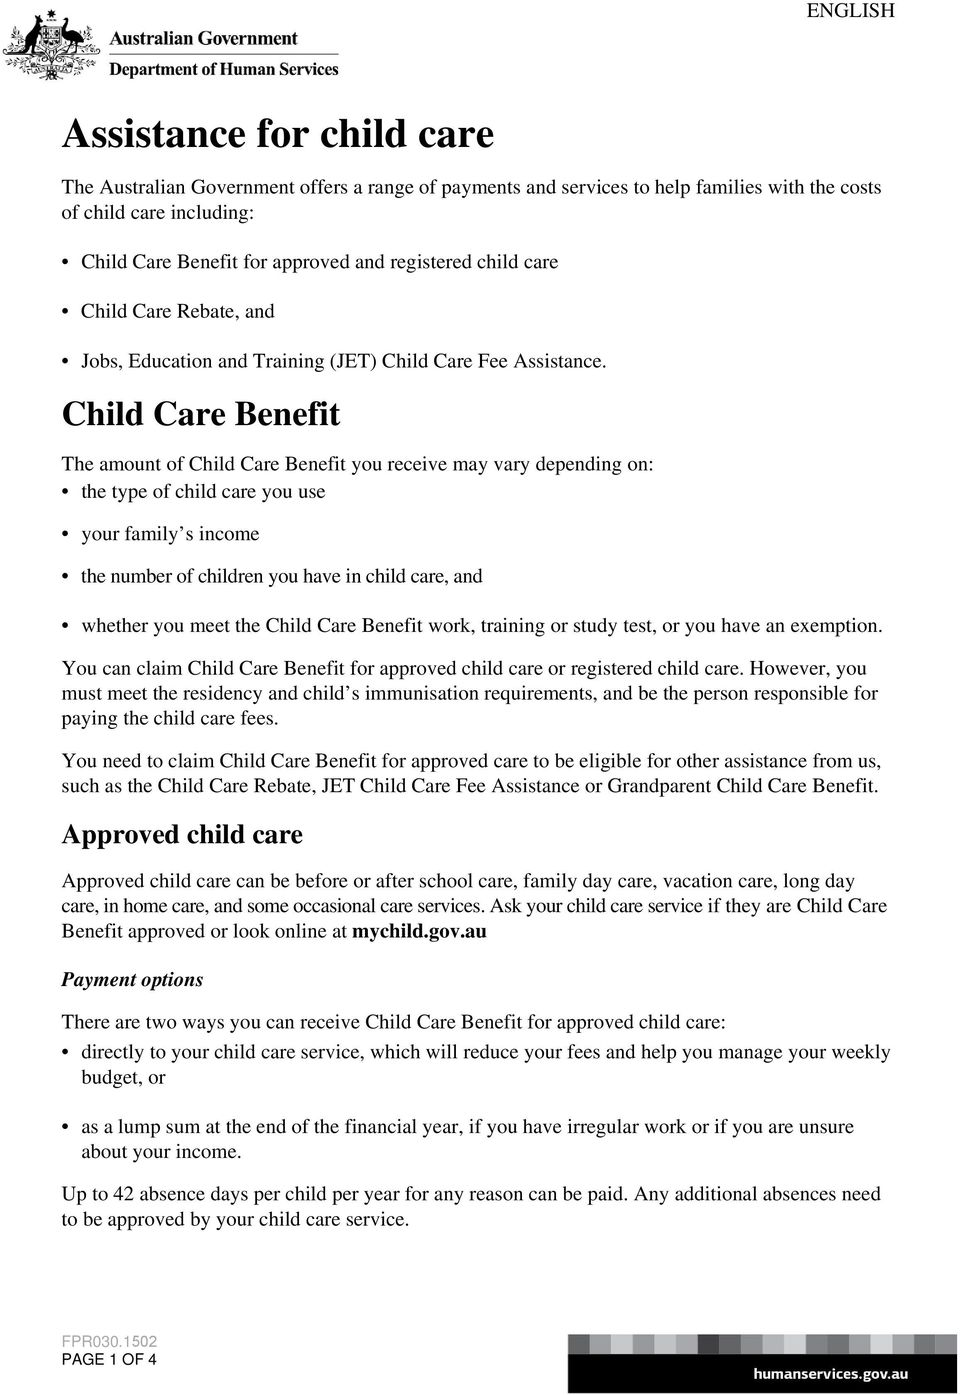 Child Care Benefit The amount of Child Care Benefit you receive may vary depending on: the type of child care you use your family s income the number of children you have in child care, and whether